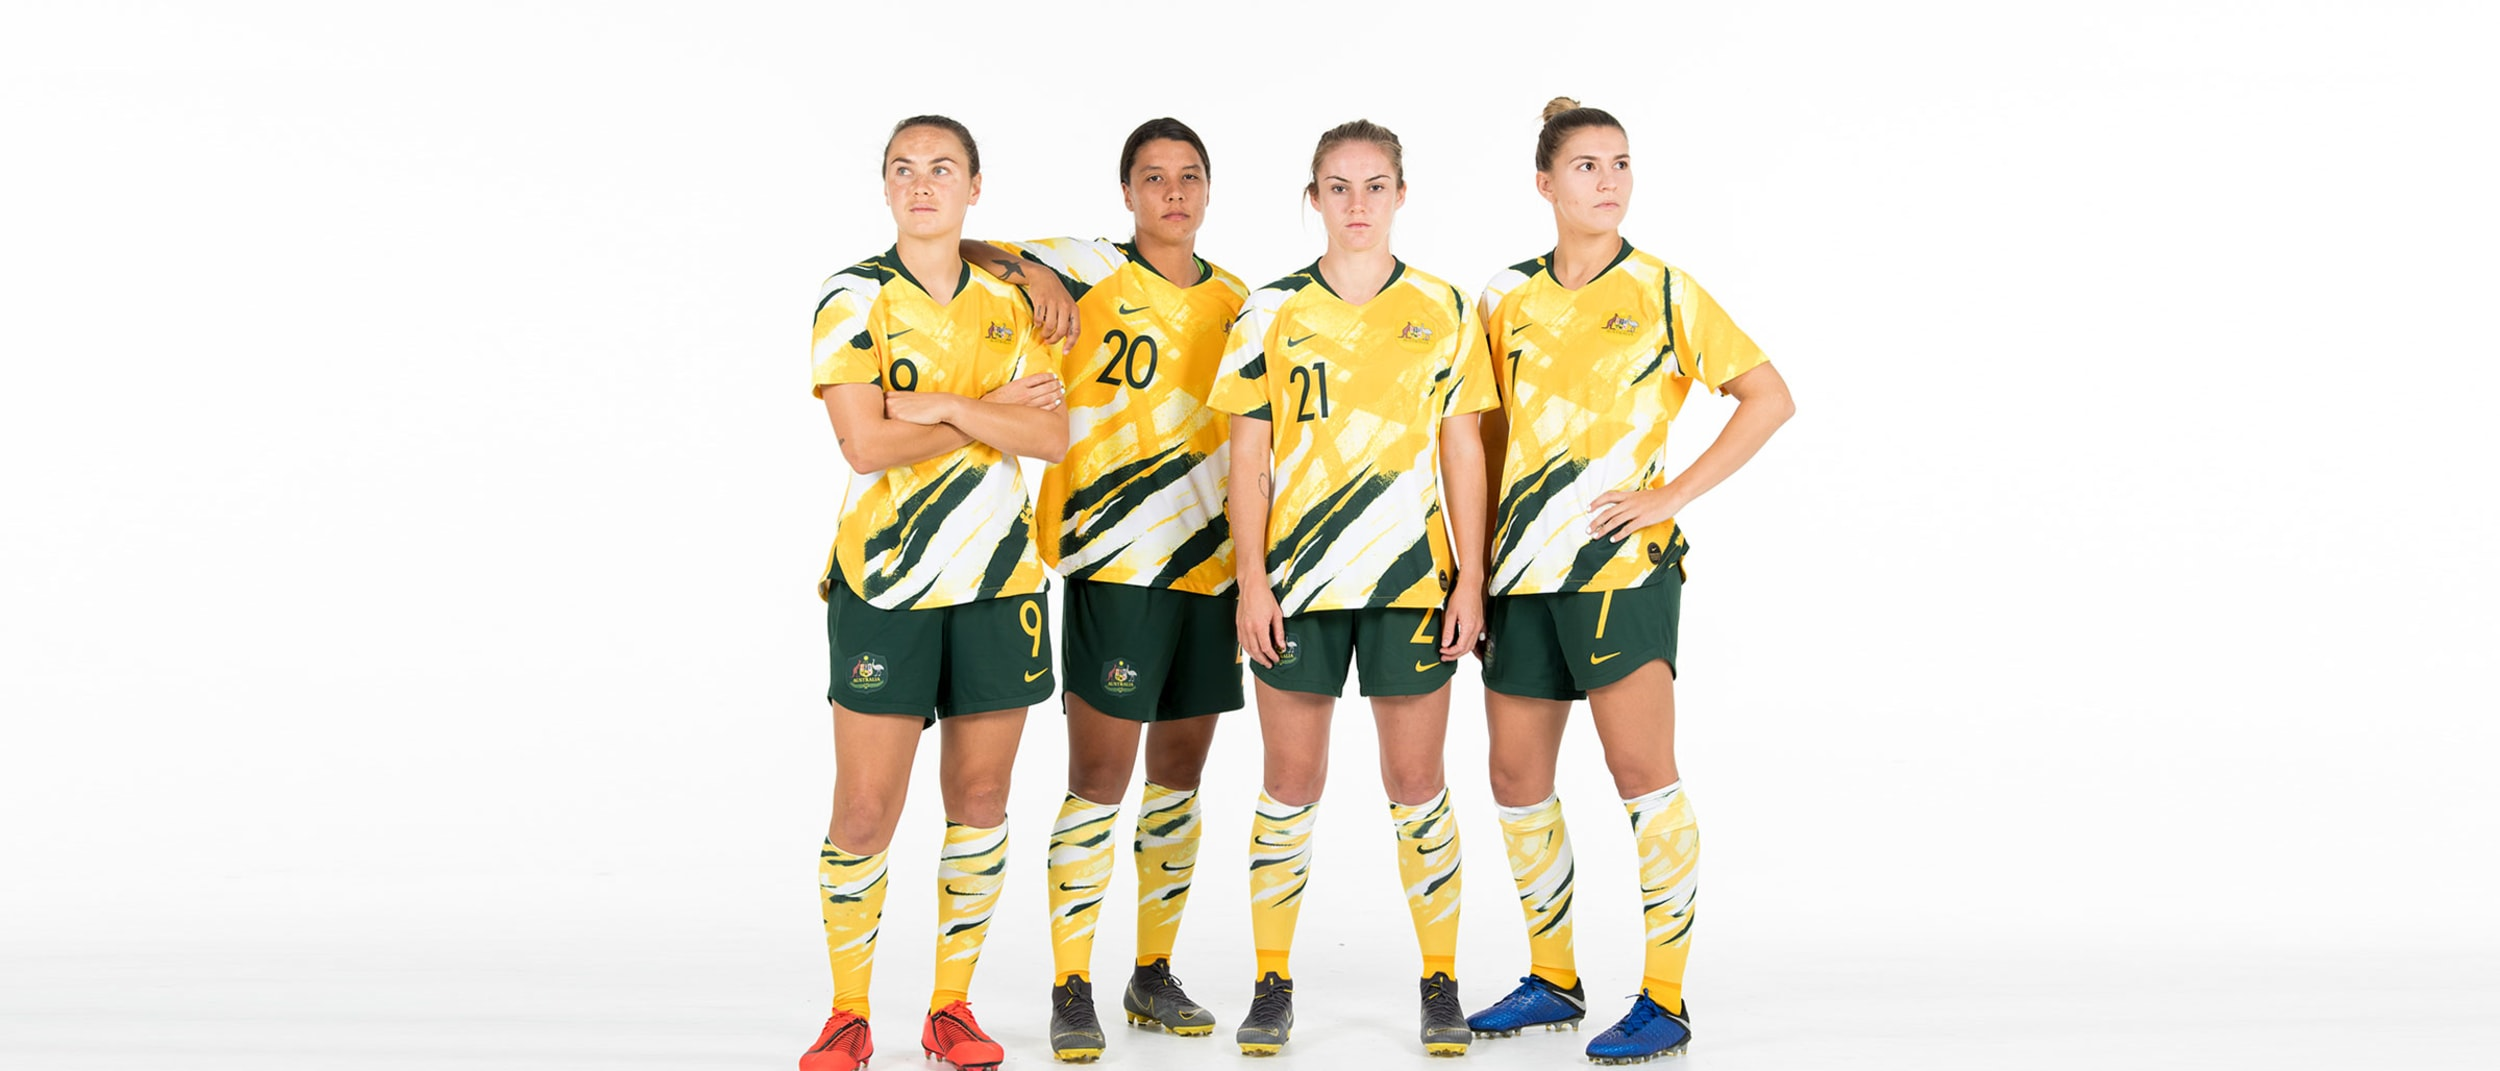 Westfield is right behind the inspiring Westfield Matildas